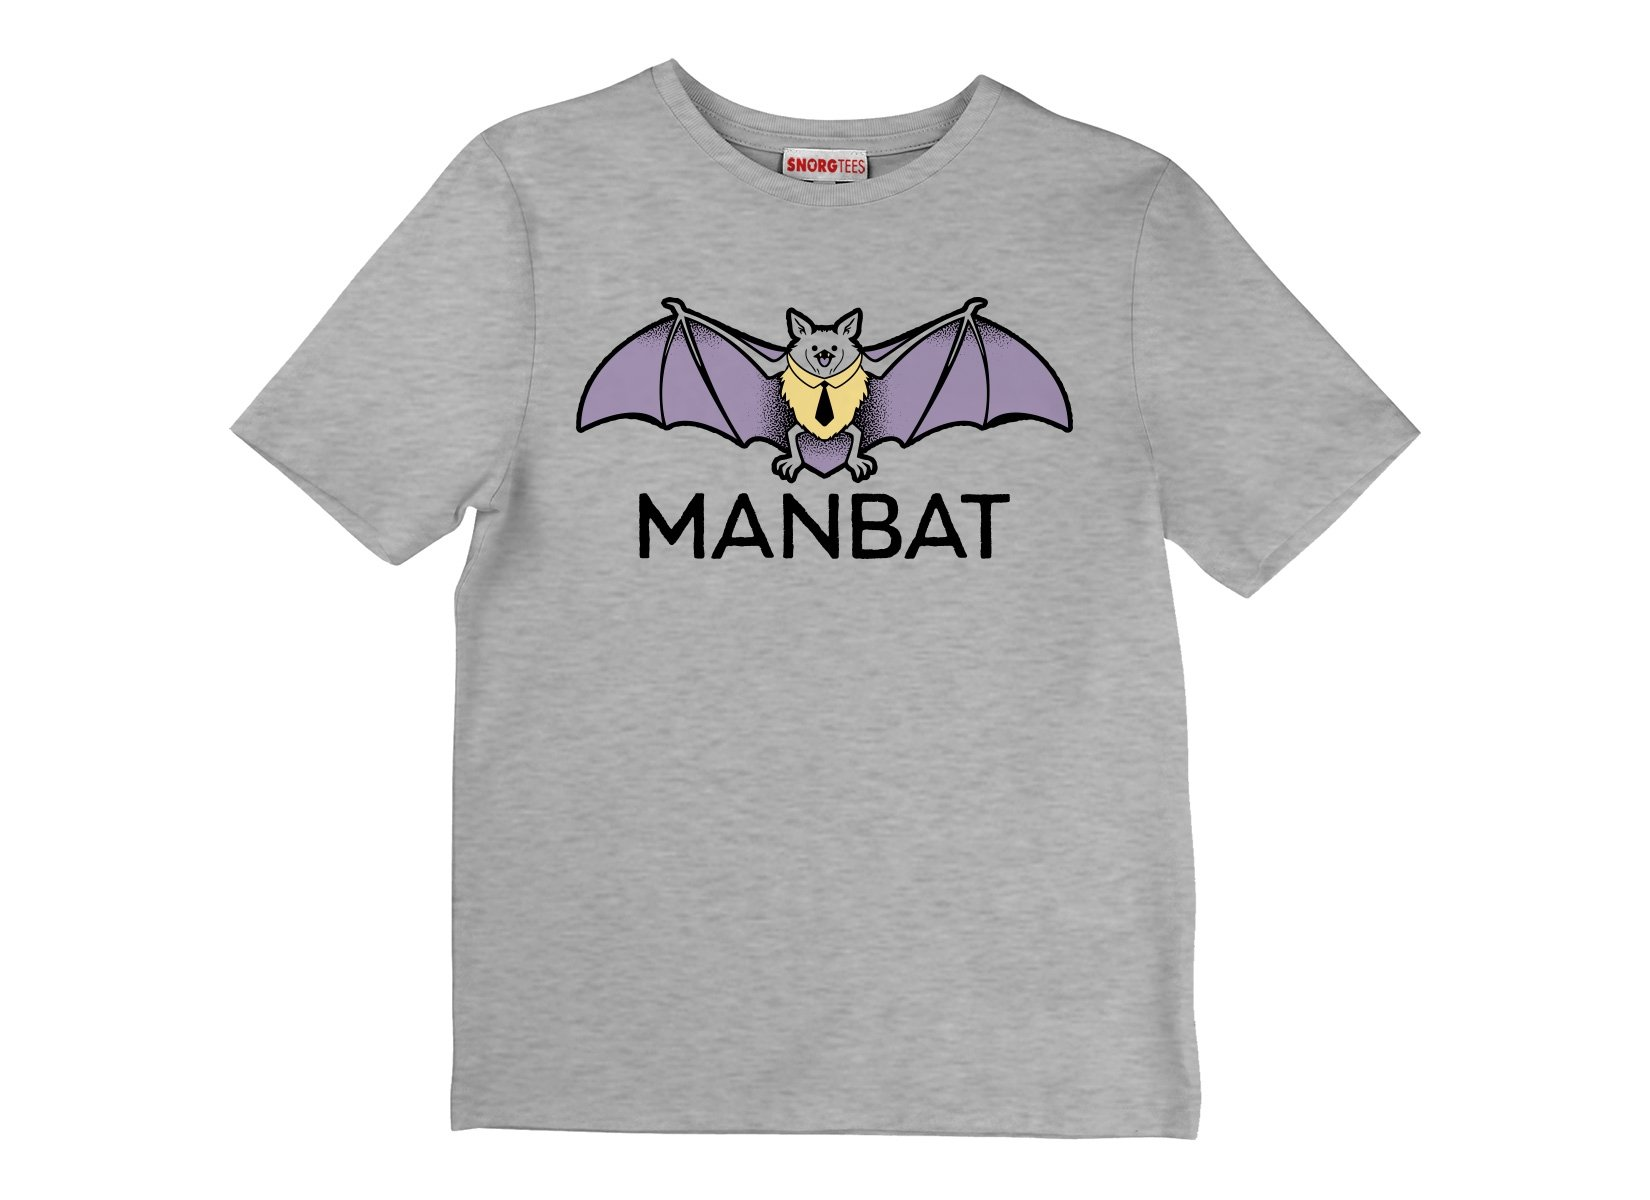 Manbat on Kids T-Shirt